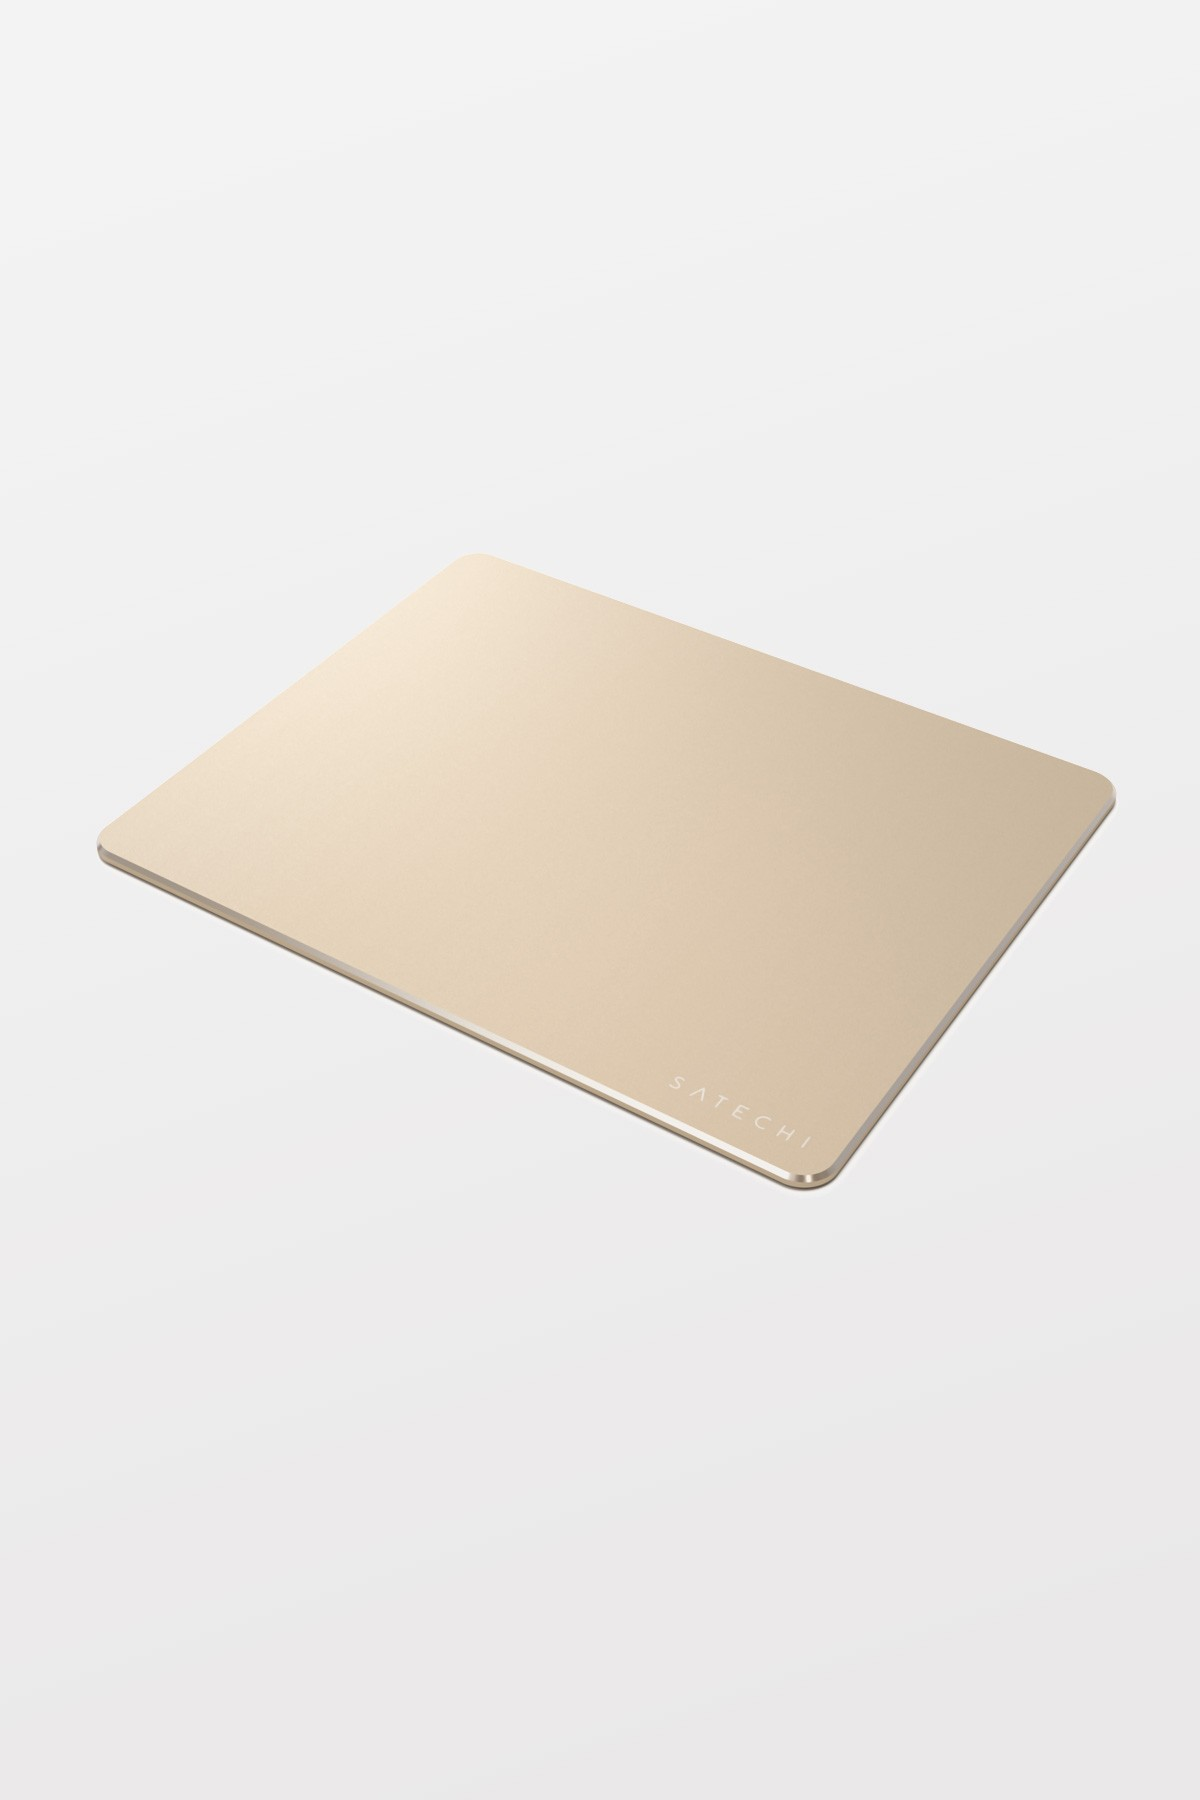 SATECHI Aluminium Mouse Pad - Gold